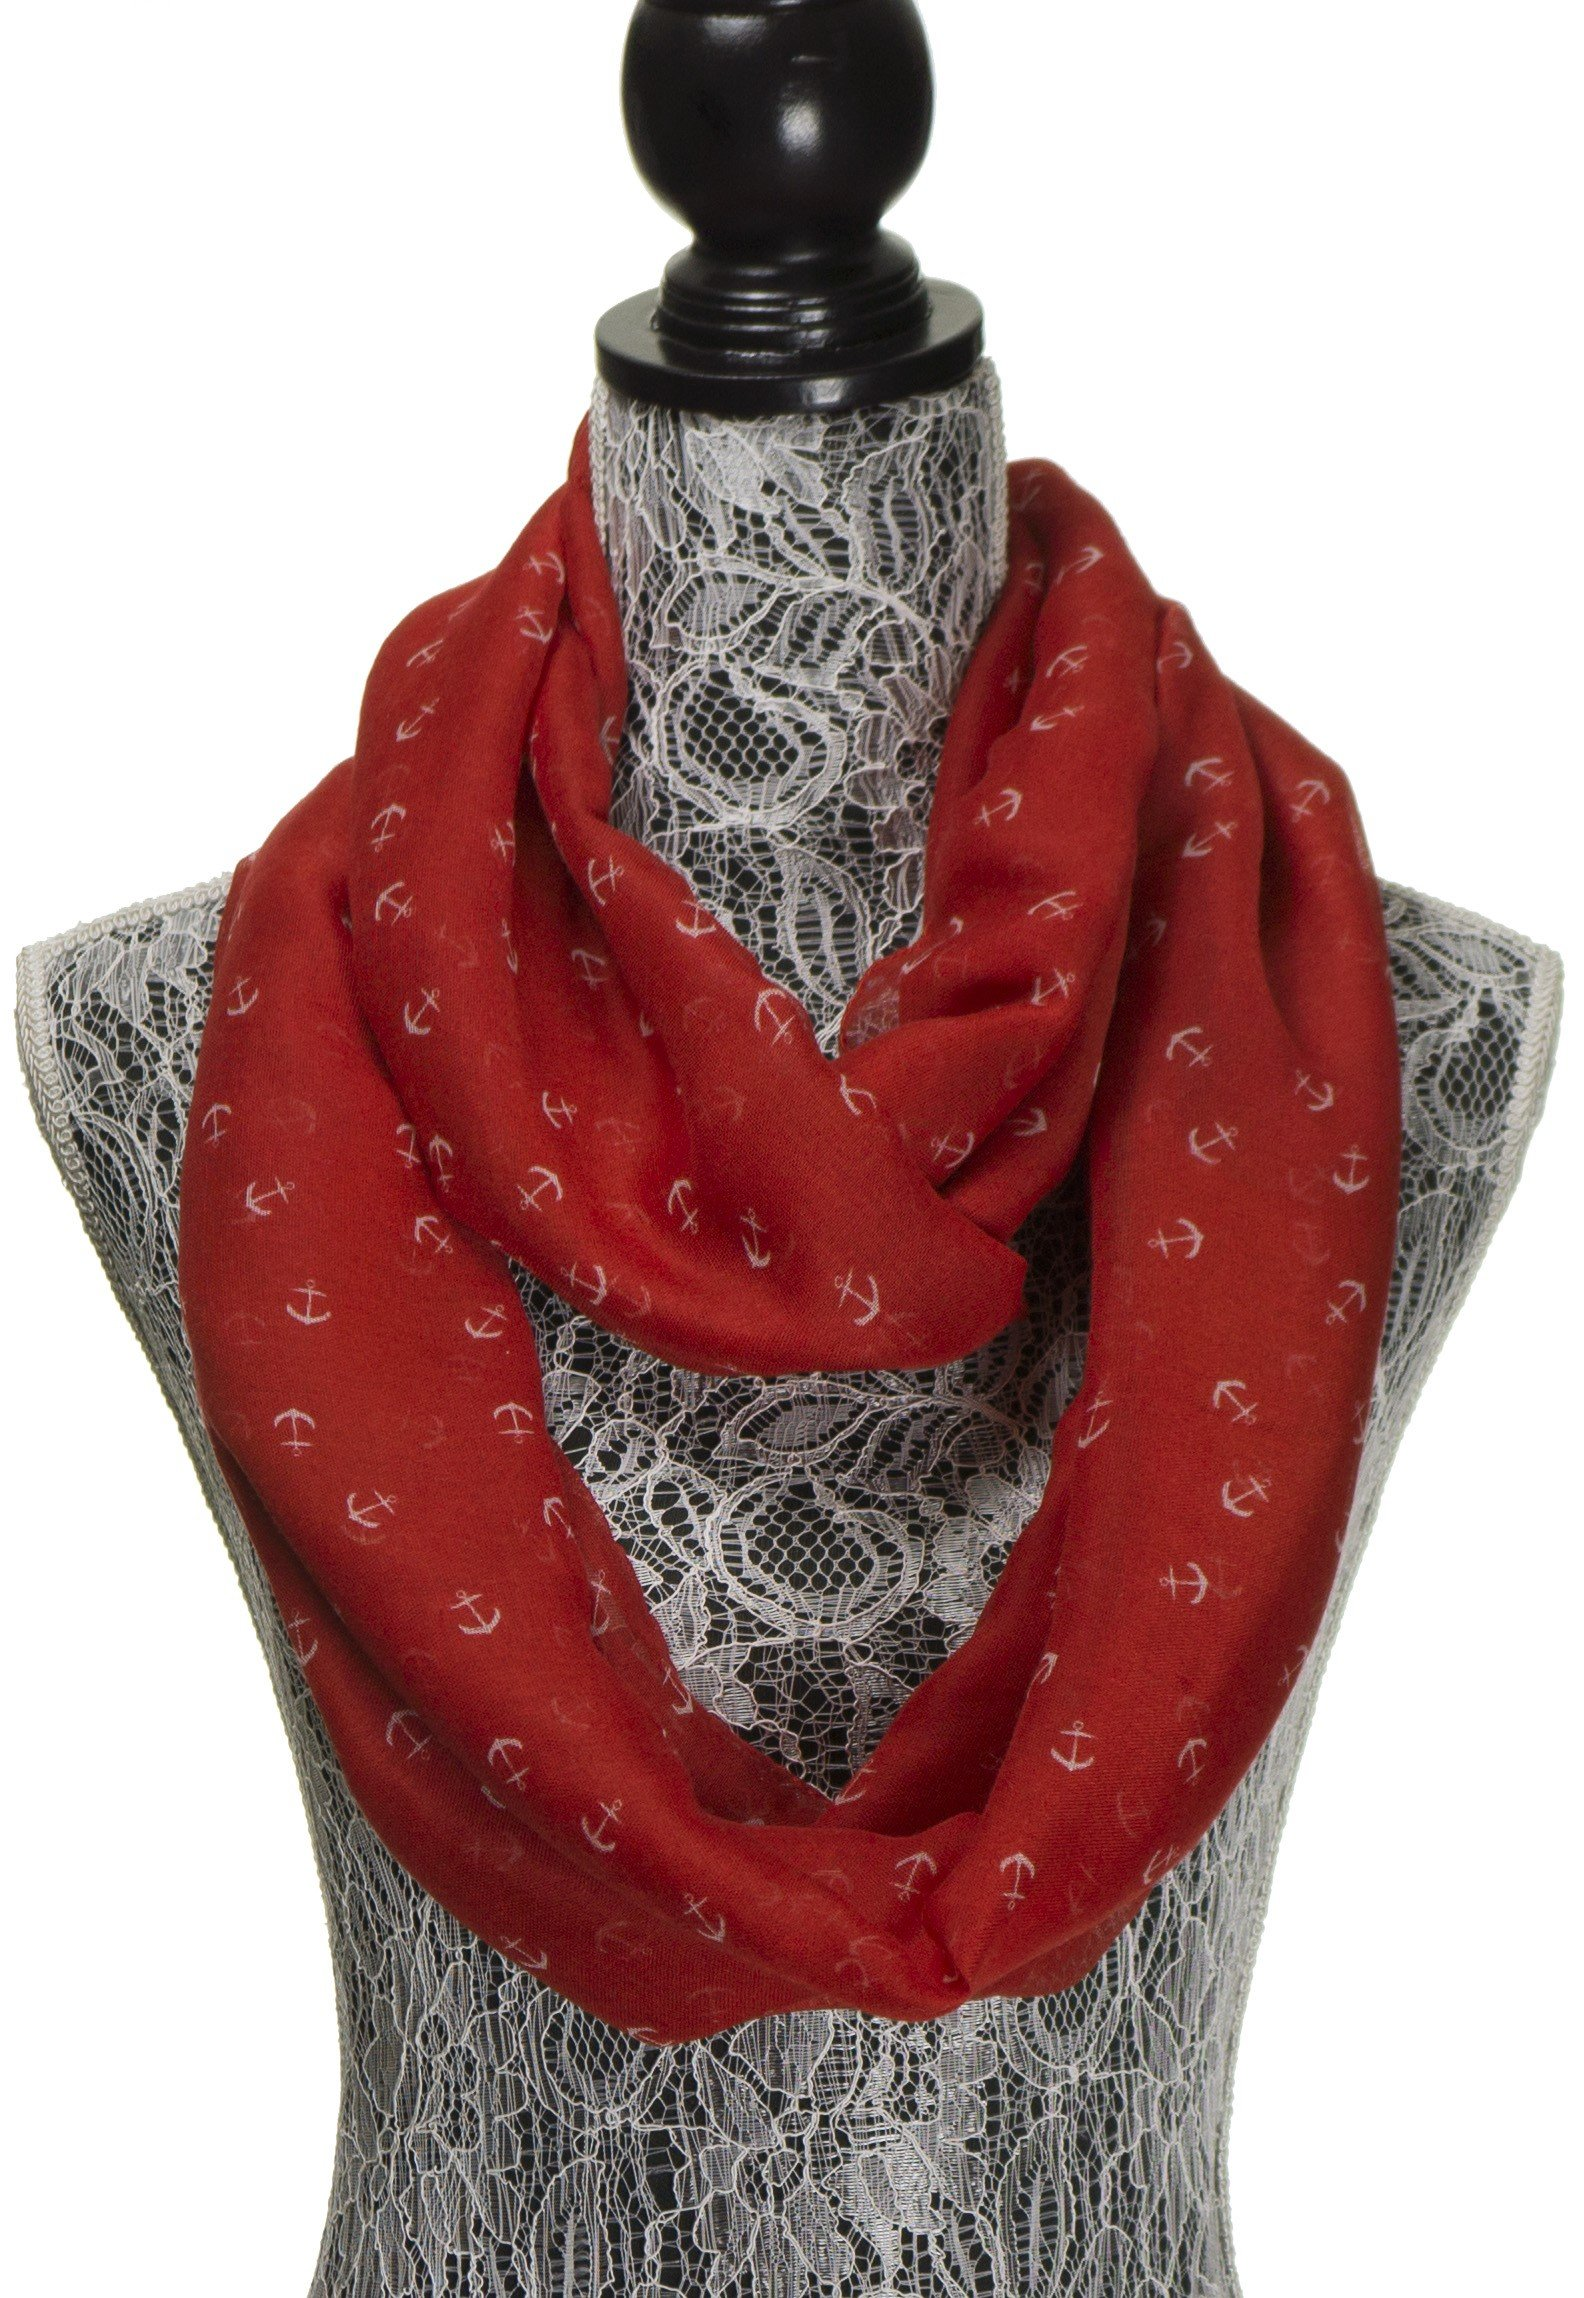 Scarfs for Women - Anchor Cute Sheer Tube Nautical Cowl Loop Circle Scarf - Lightweight Fashion Infinity Womens Scarves (Red)